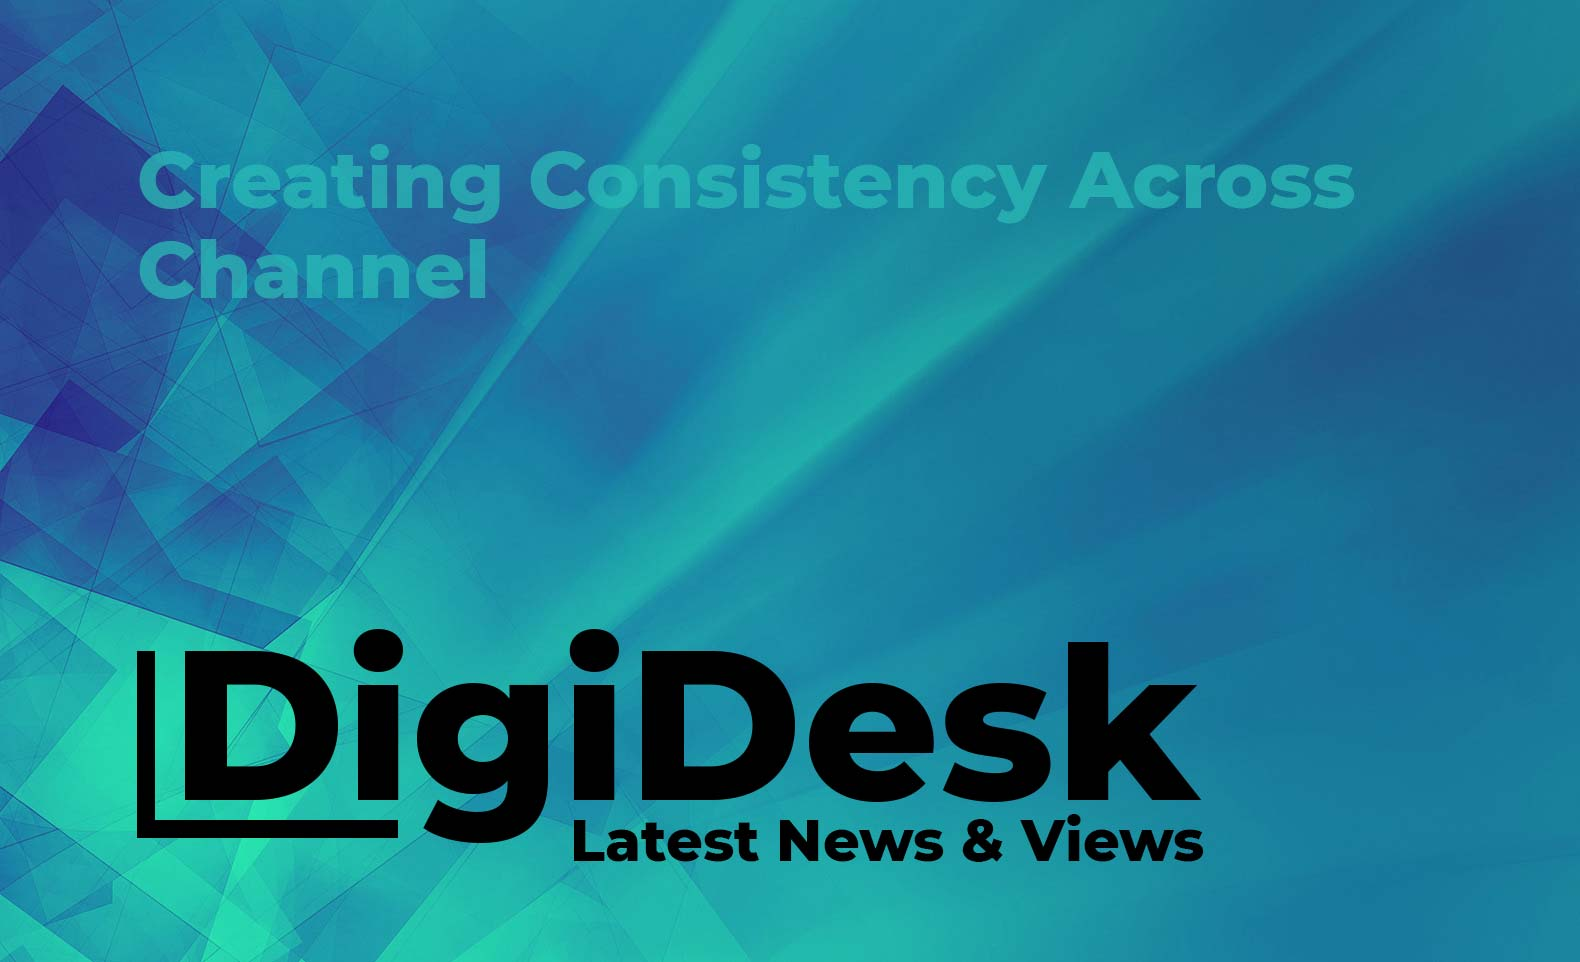 Blog banner - Creating consistency across channel